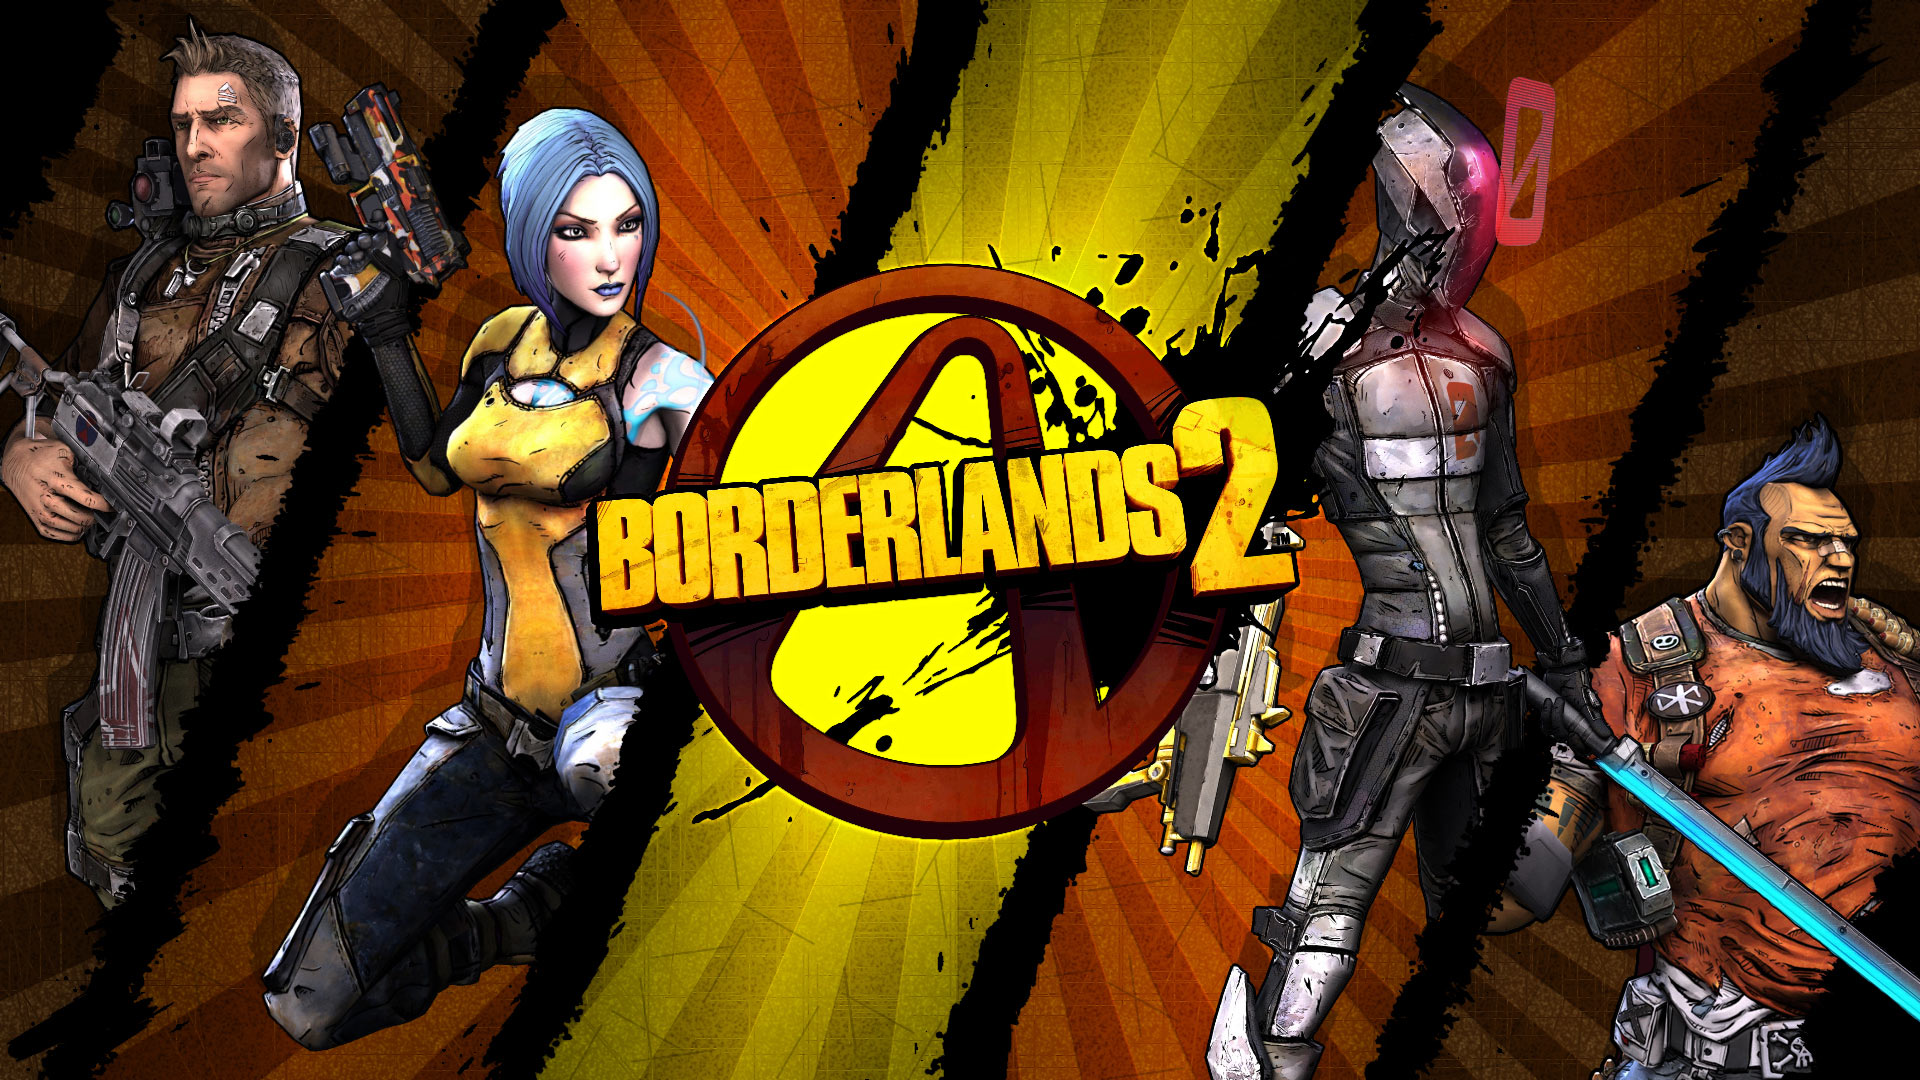 Borderlands 2 Wallpaper